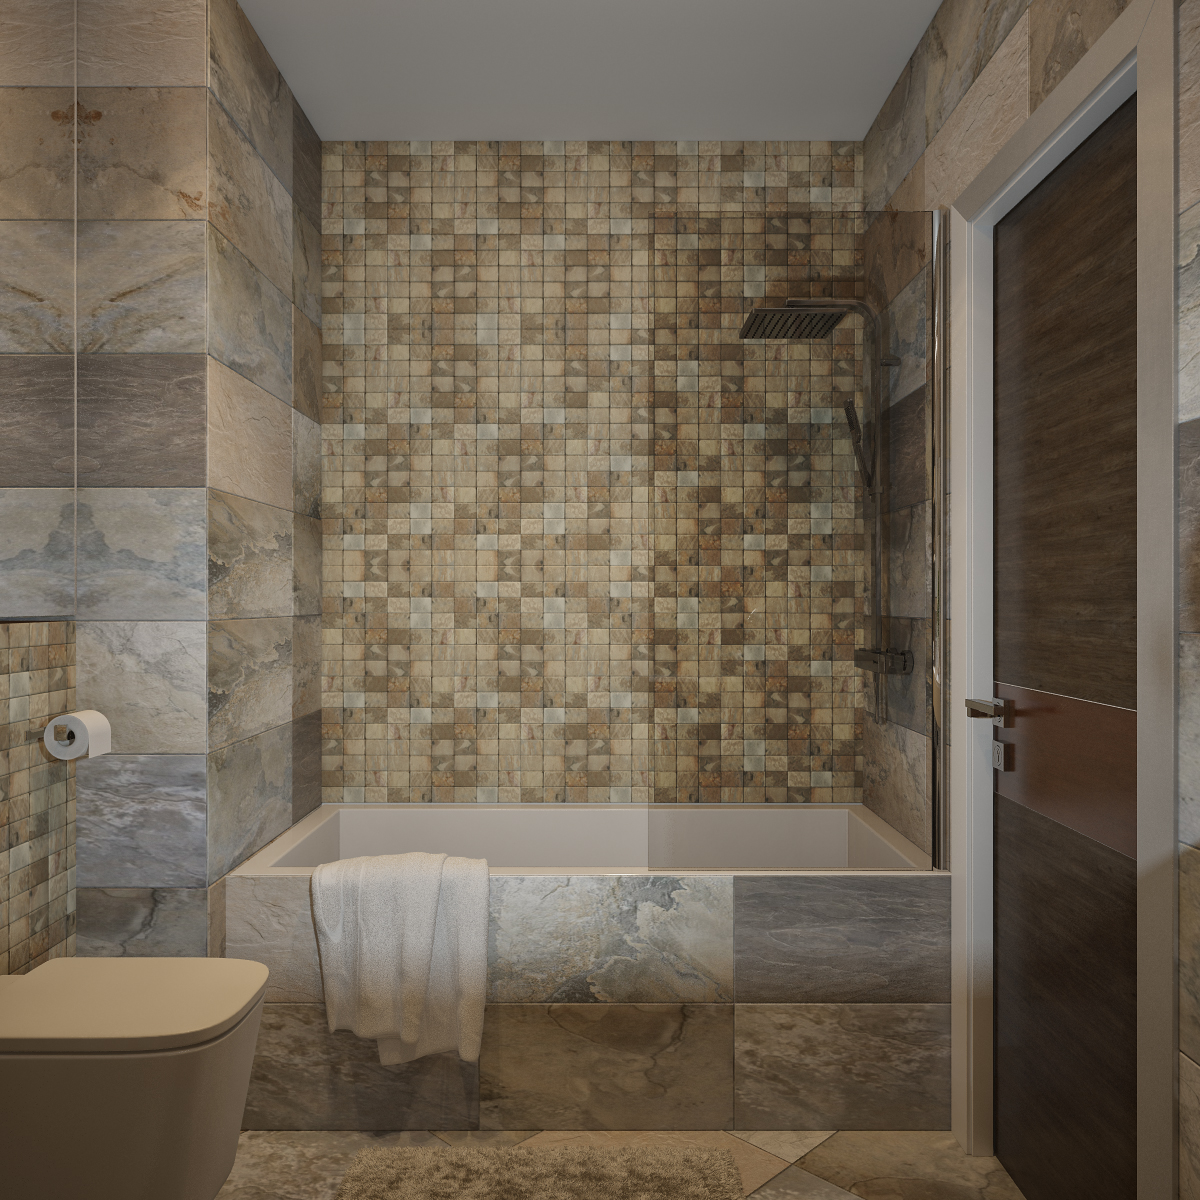 30 cool ideas and pictures of natural stone bathroom Bathroom tile ideas mosaic